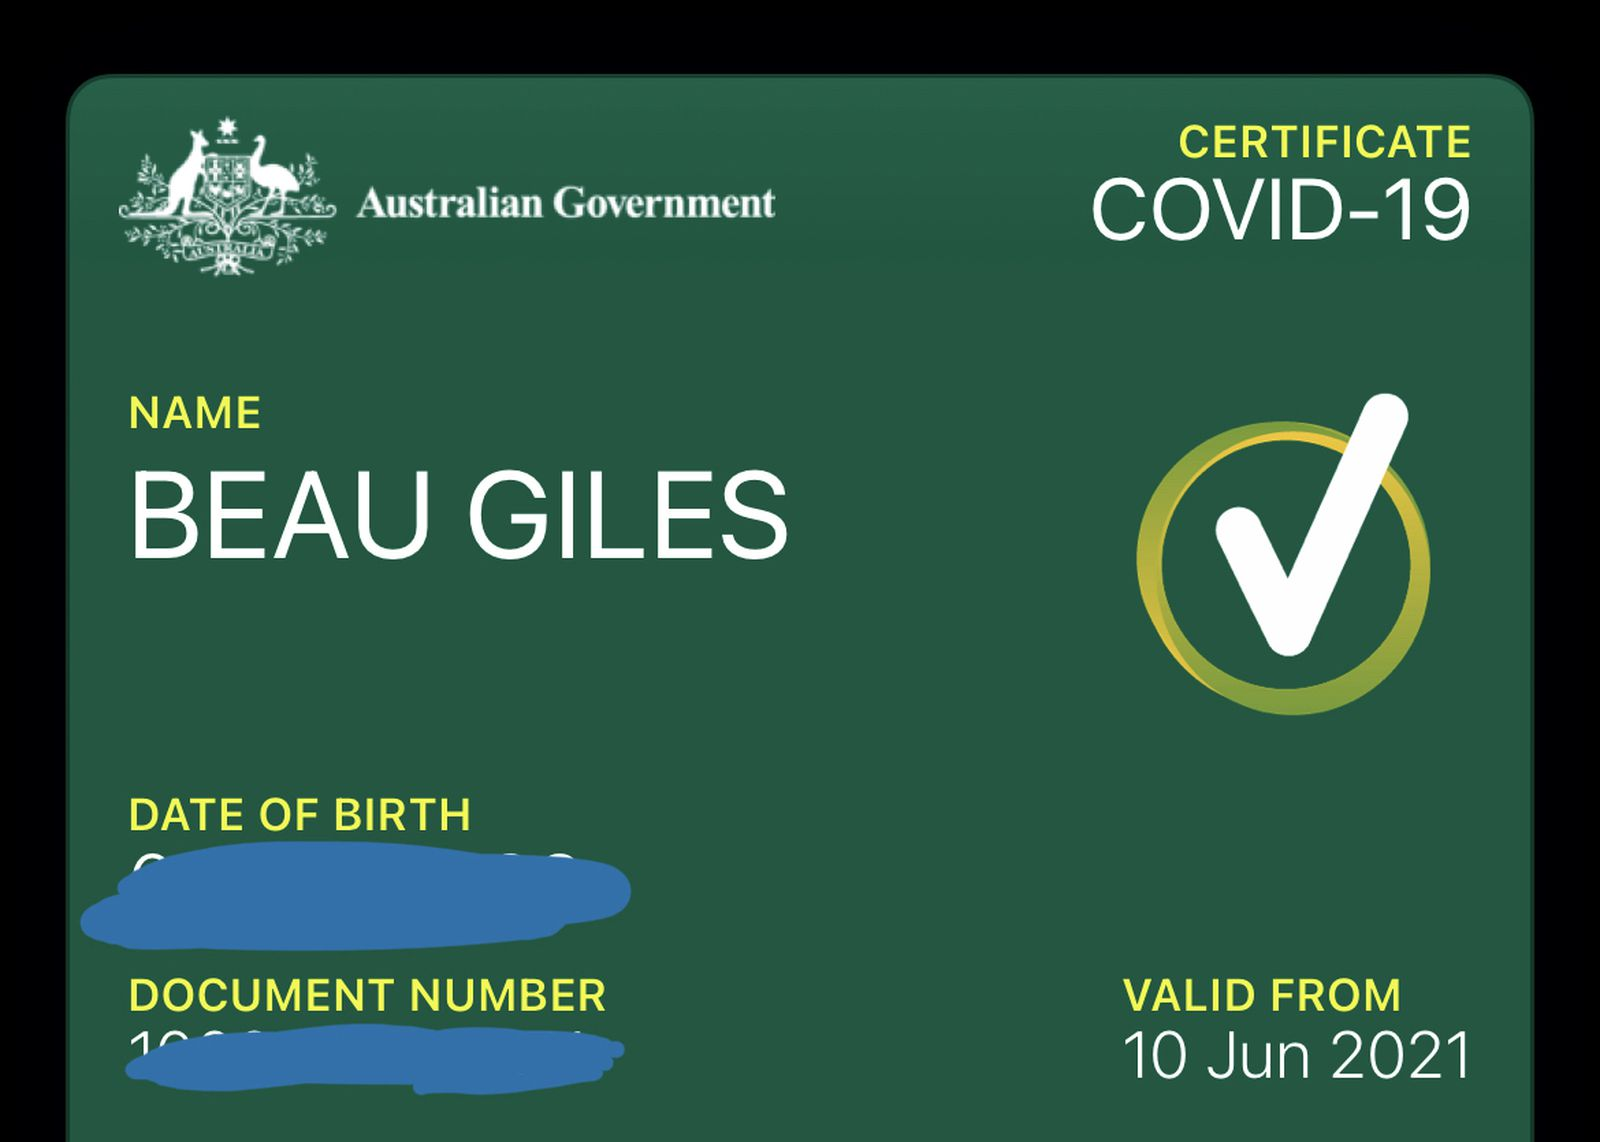 Australian Government Now Offering COVID-19 Digital Vaccination Certificates for Apple Wallet